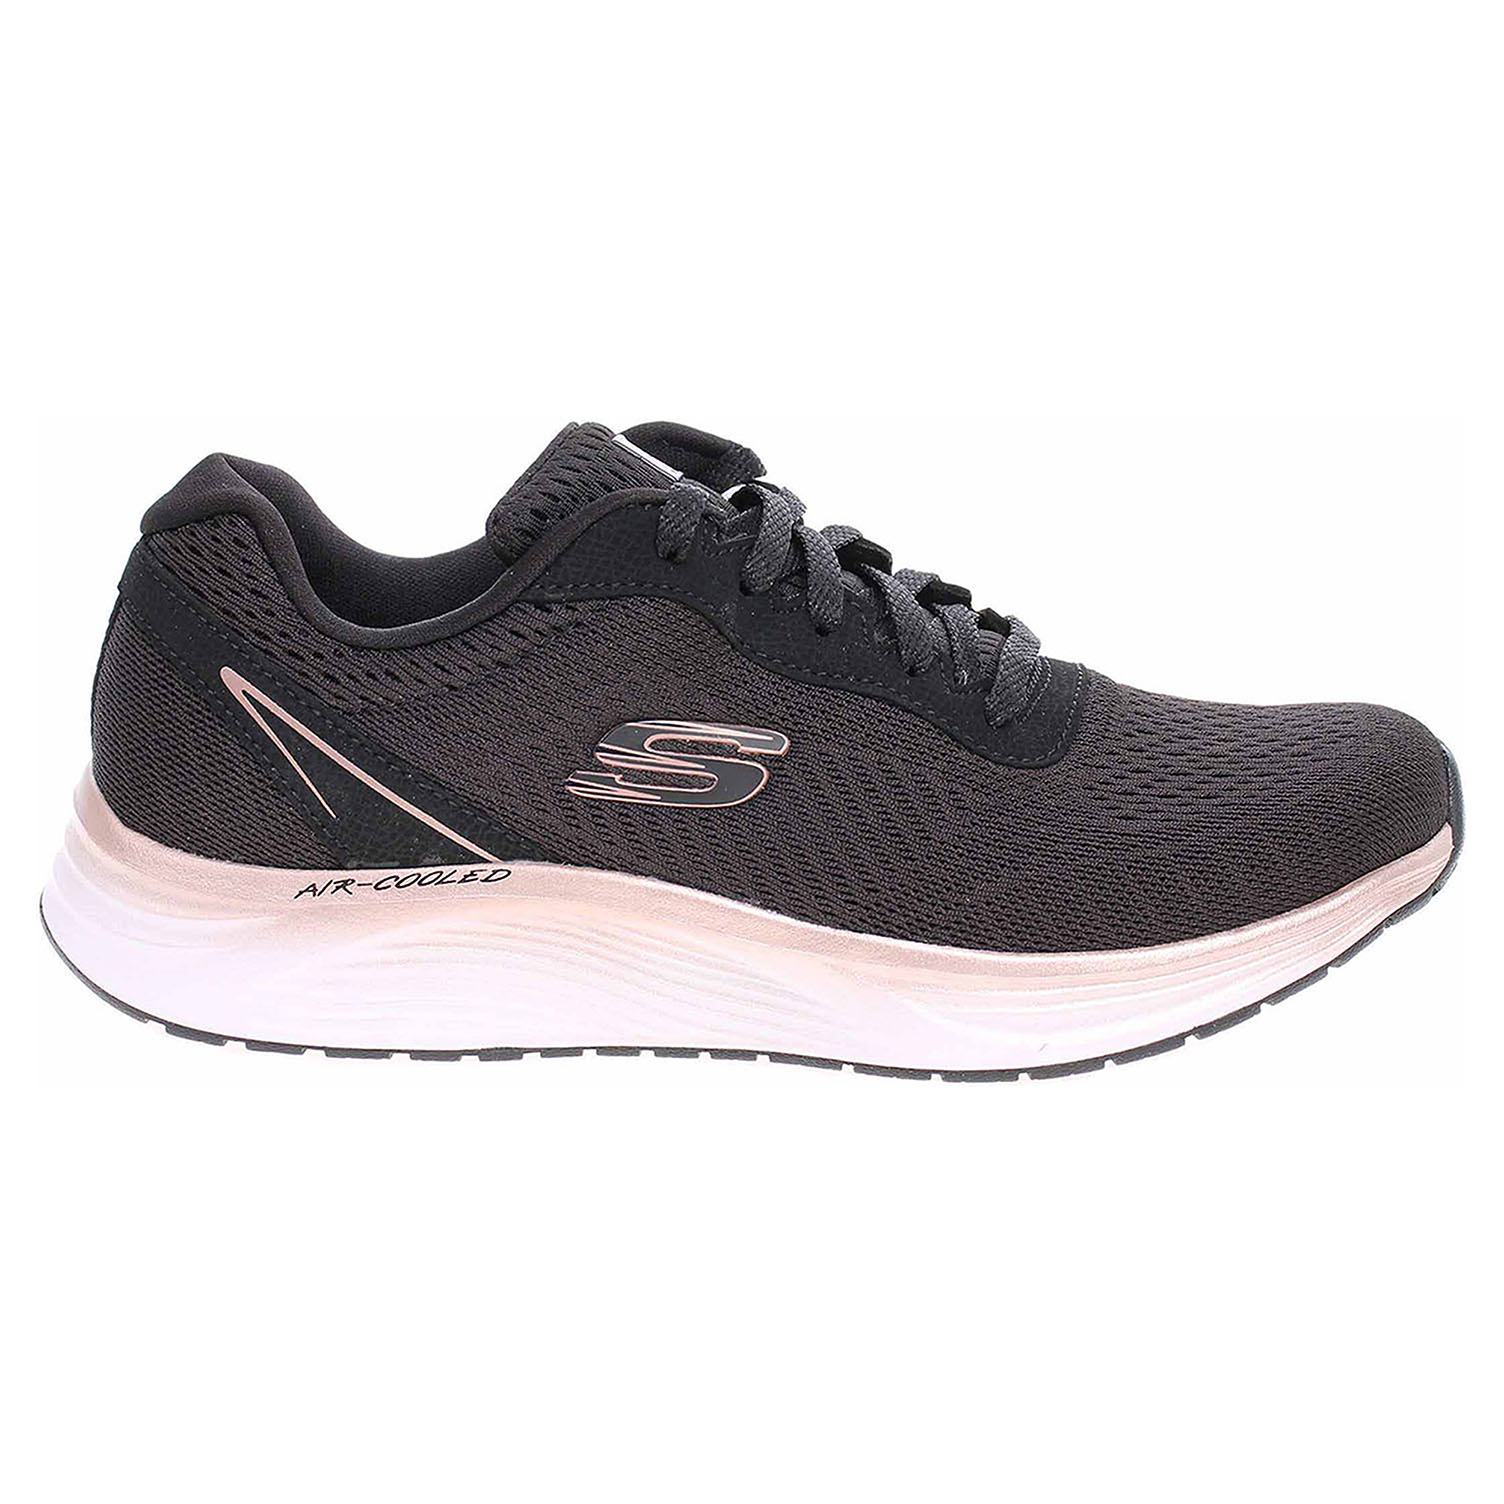 Skechers Skyline - Blaze By black-rose gold